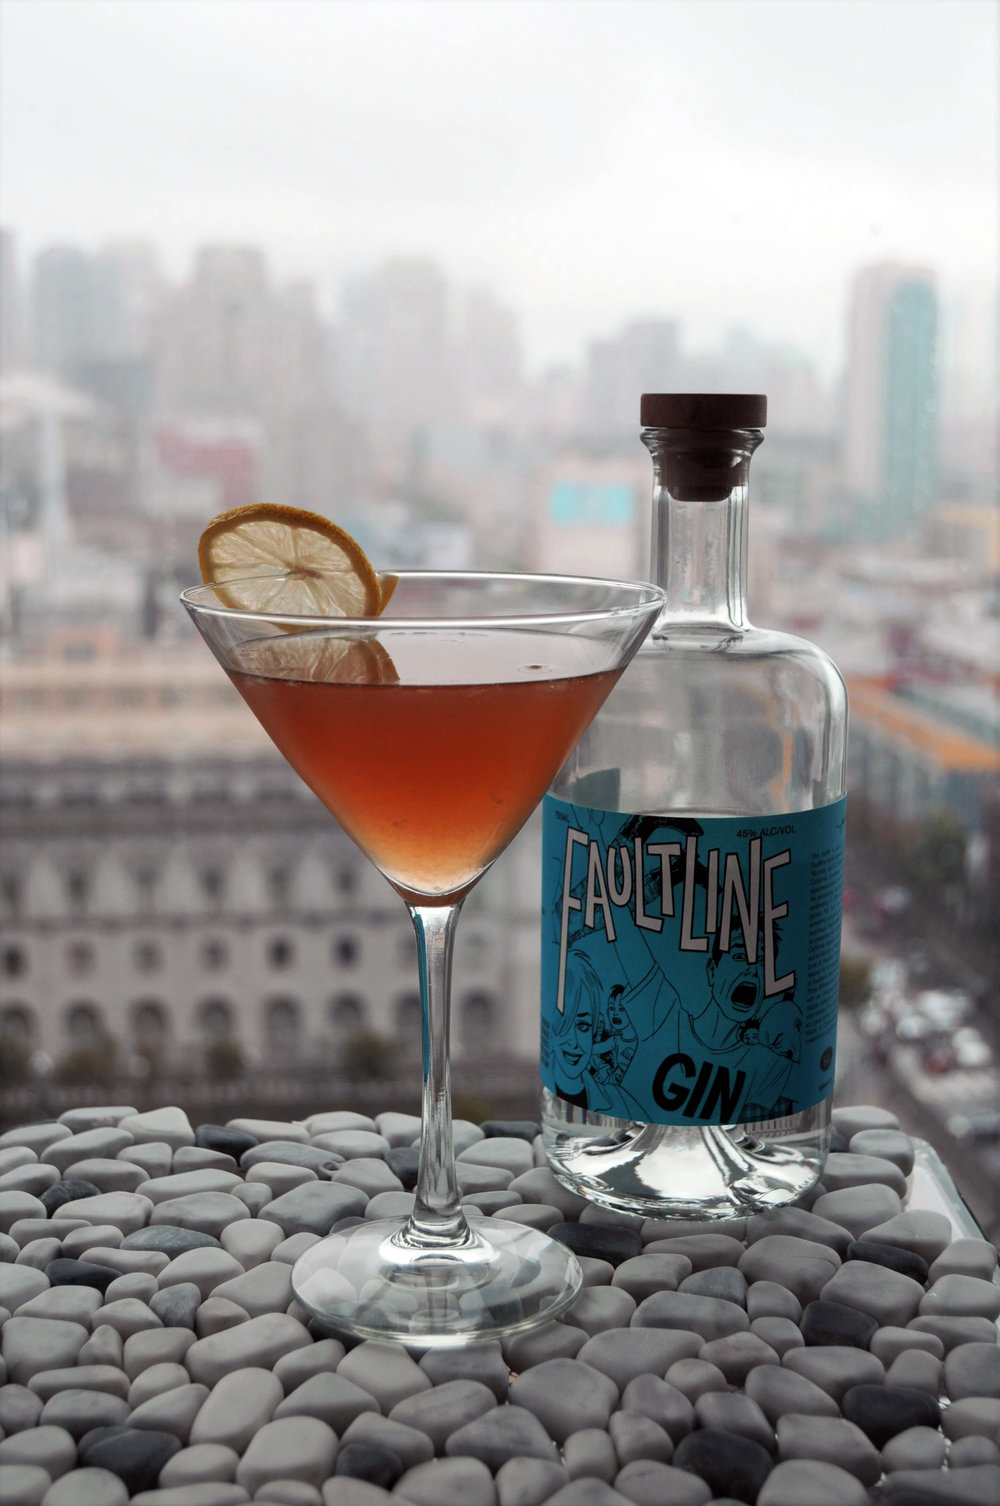 Faultline Gin Cocktail